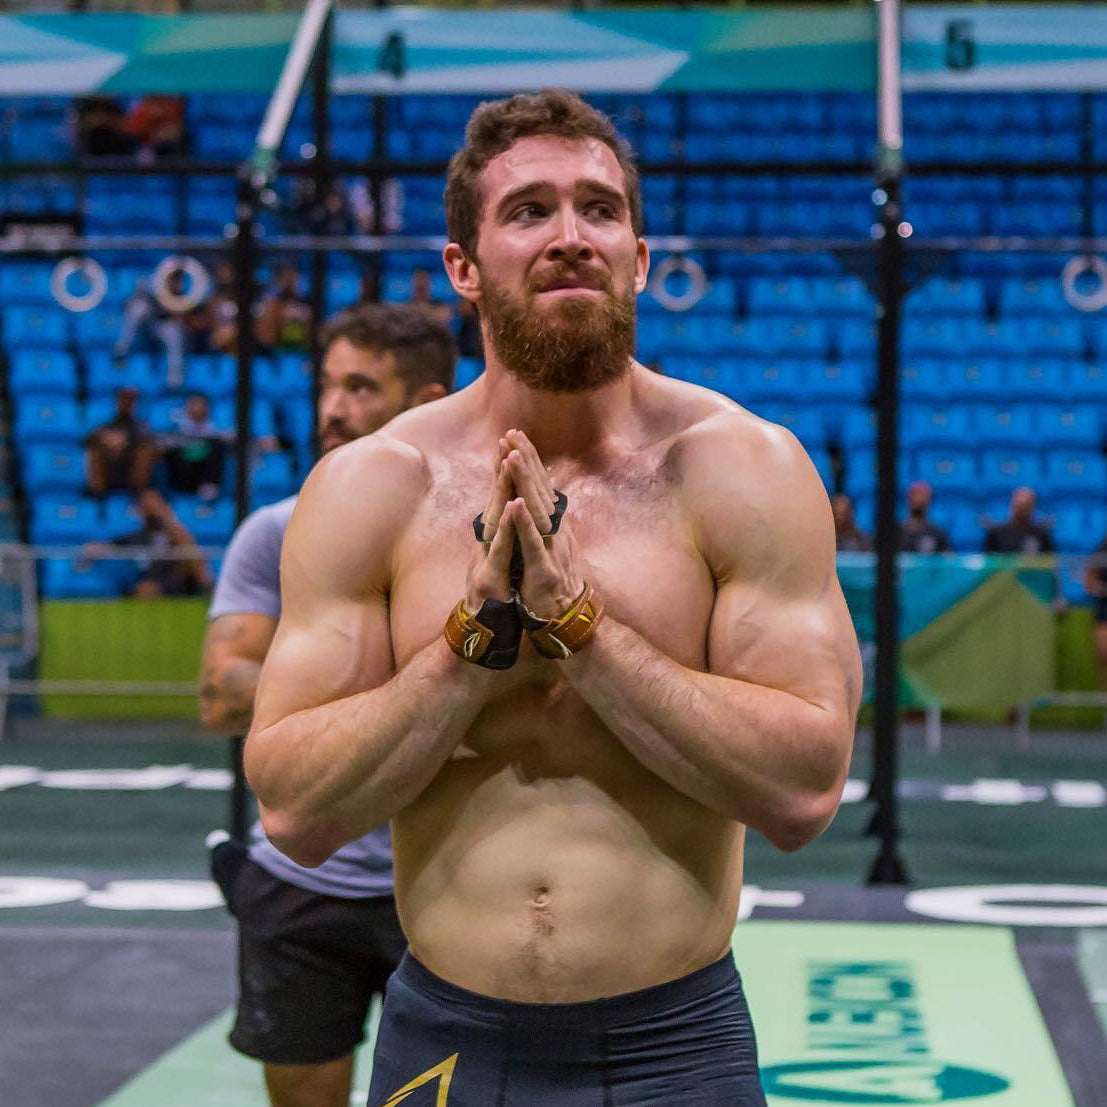 'I can enjoy the process whether I reach my goal or not'- Adam Davidson on his CrossFit Games experience